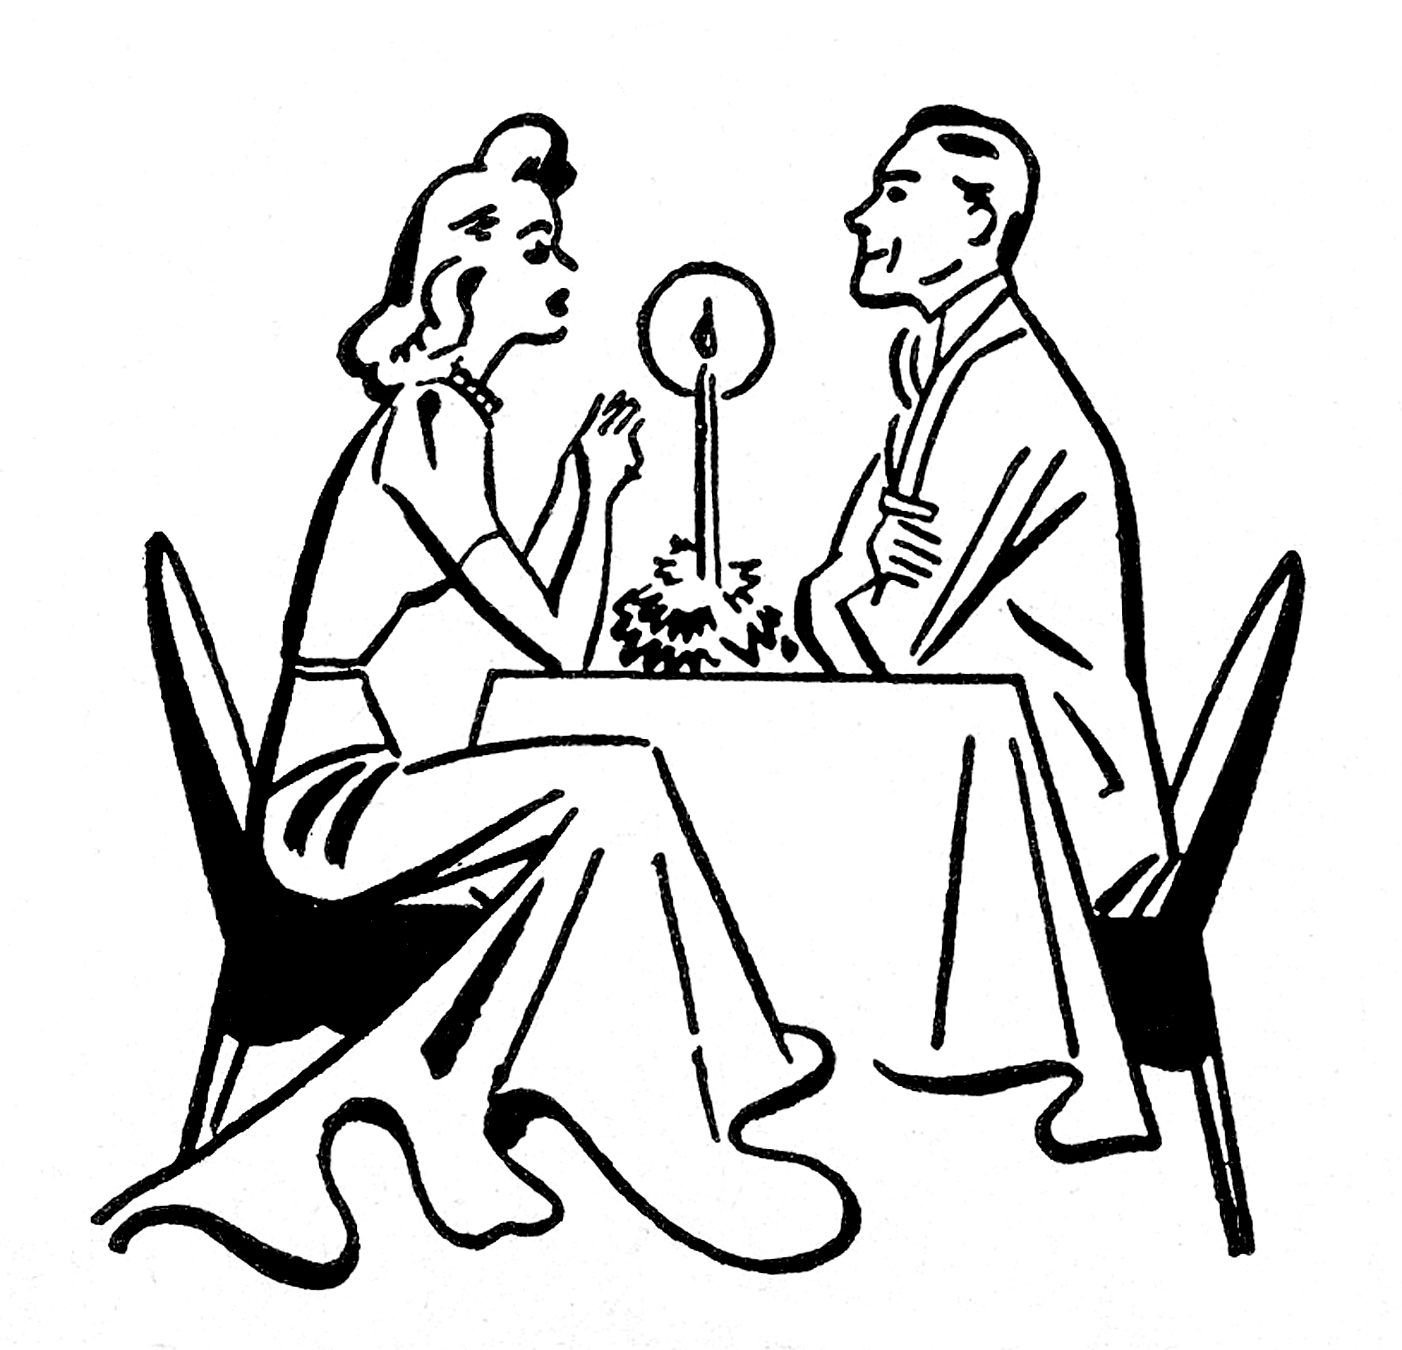 Candlelight dinner clipart free.